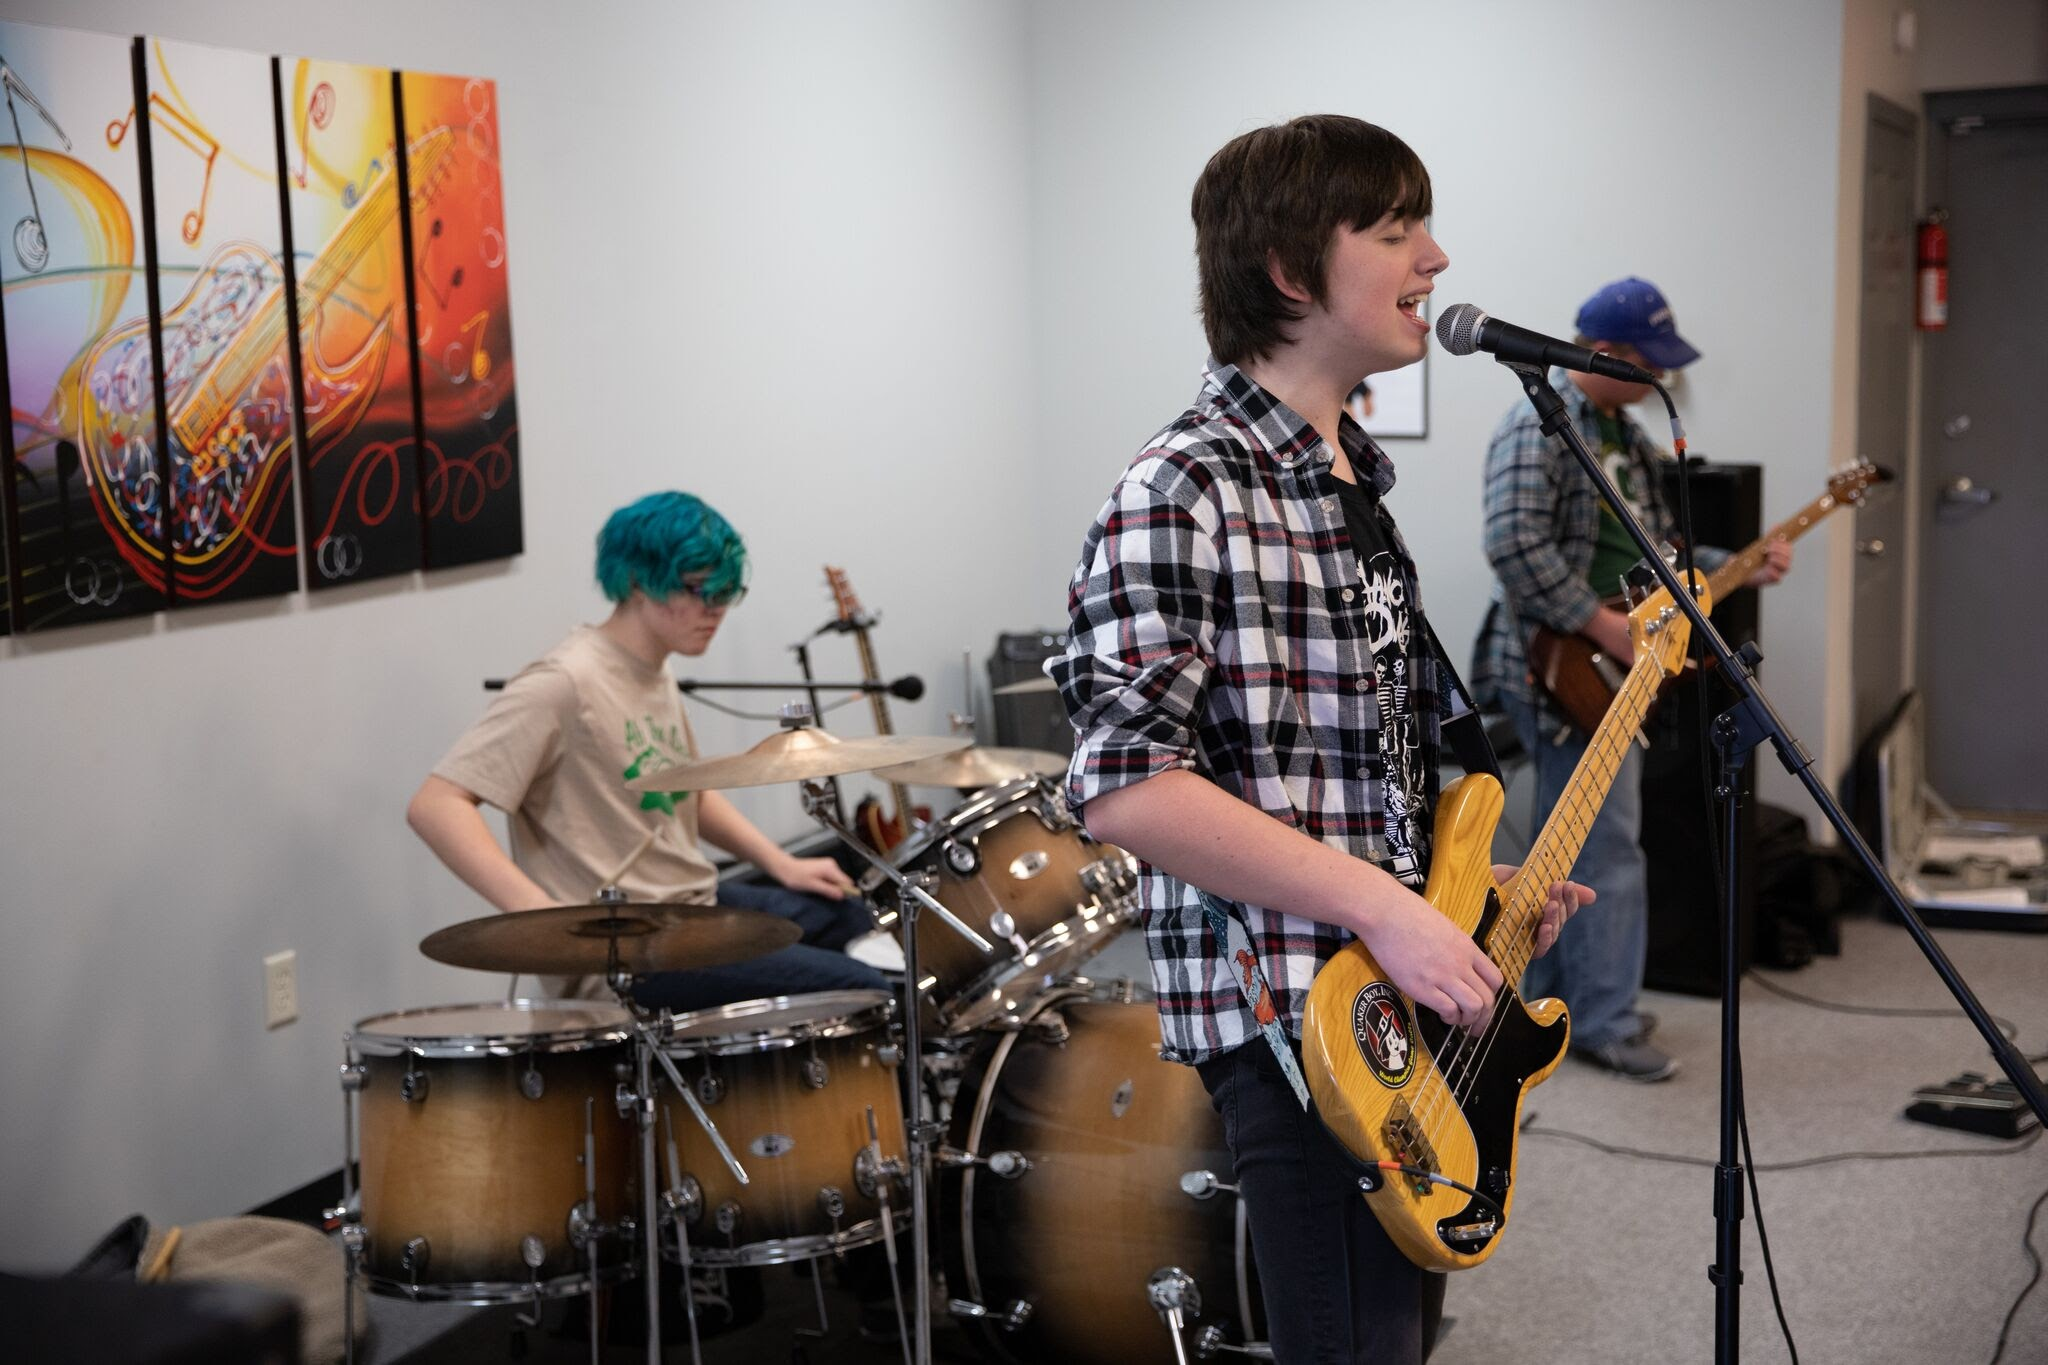 guitar classes for kids and adults near me in conway ar